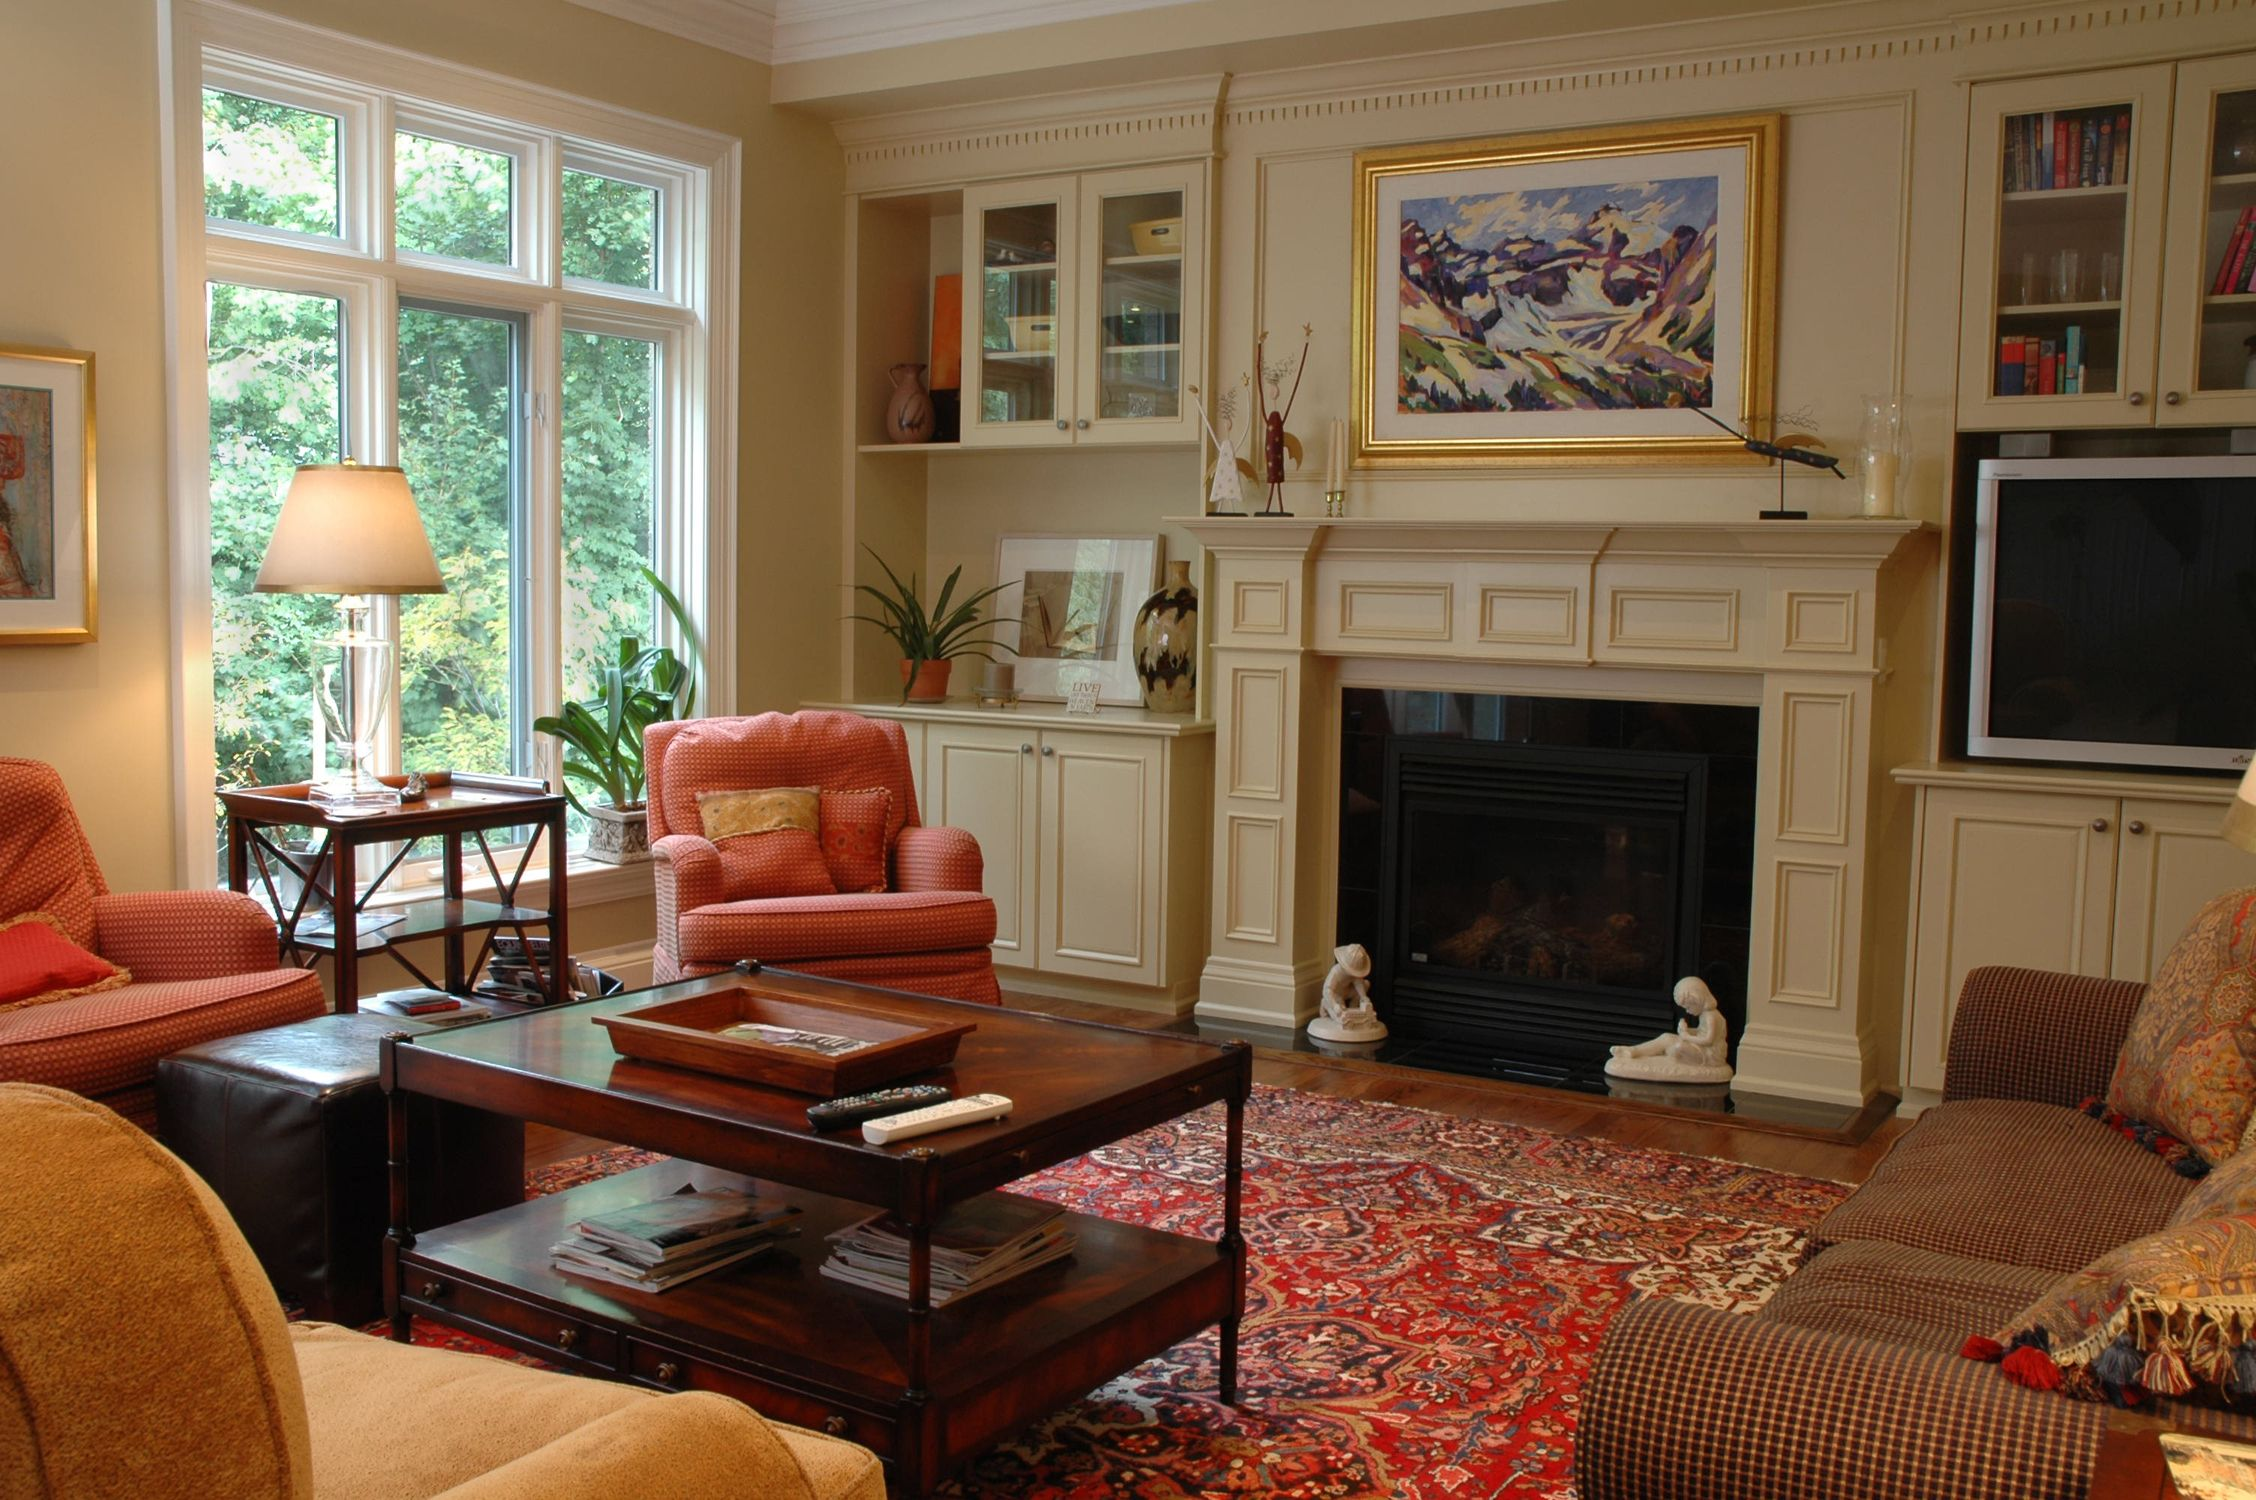 16 x 16 living room space with fireplace bing images on family picture wall ideas for living room furniture arrangements id=96812